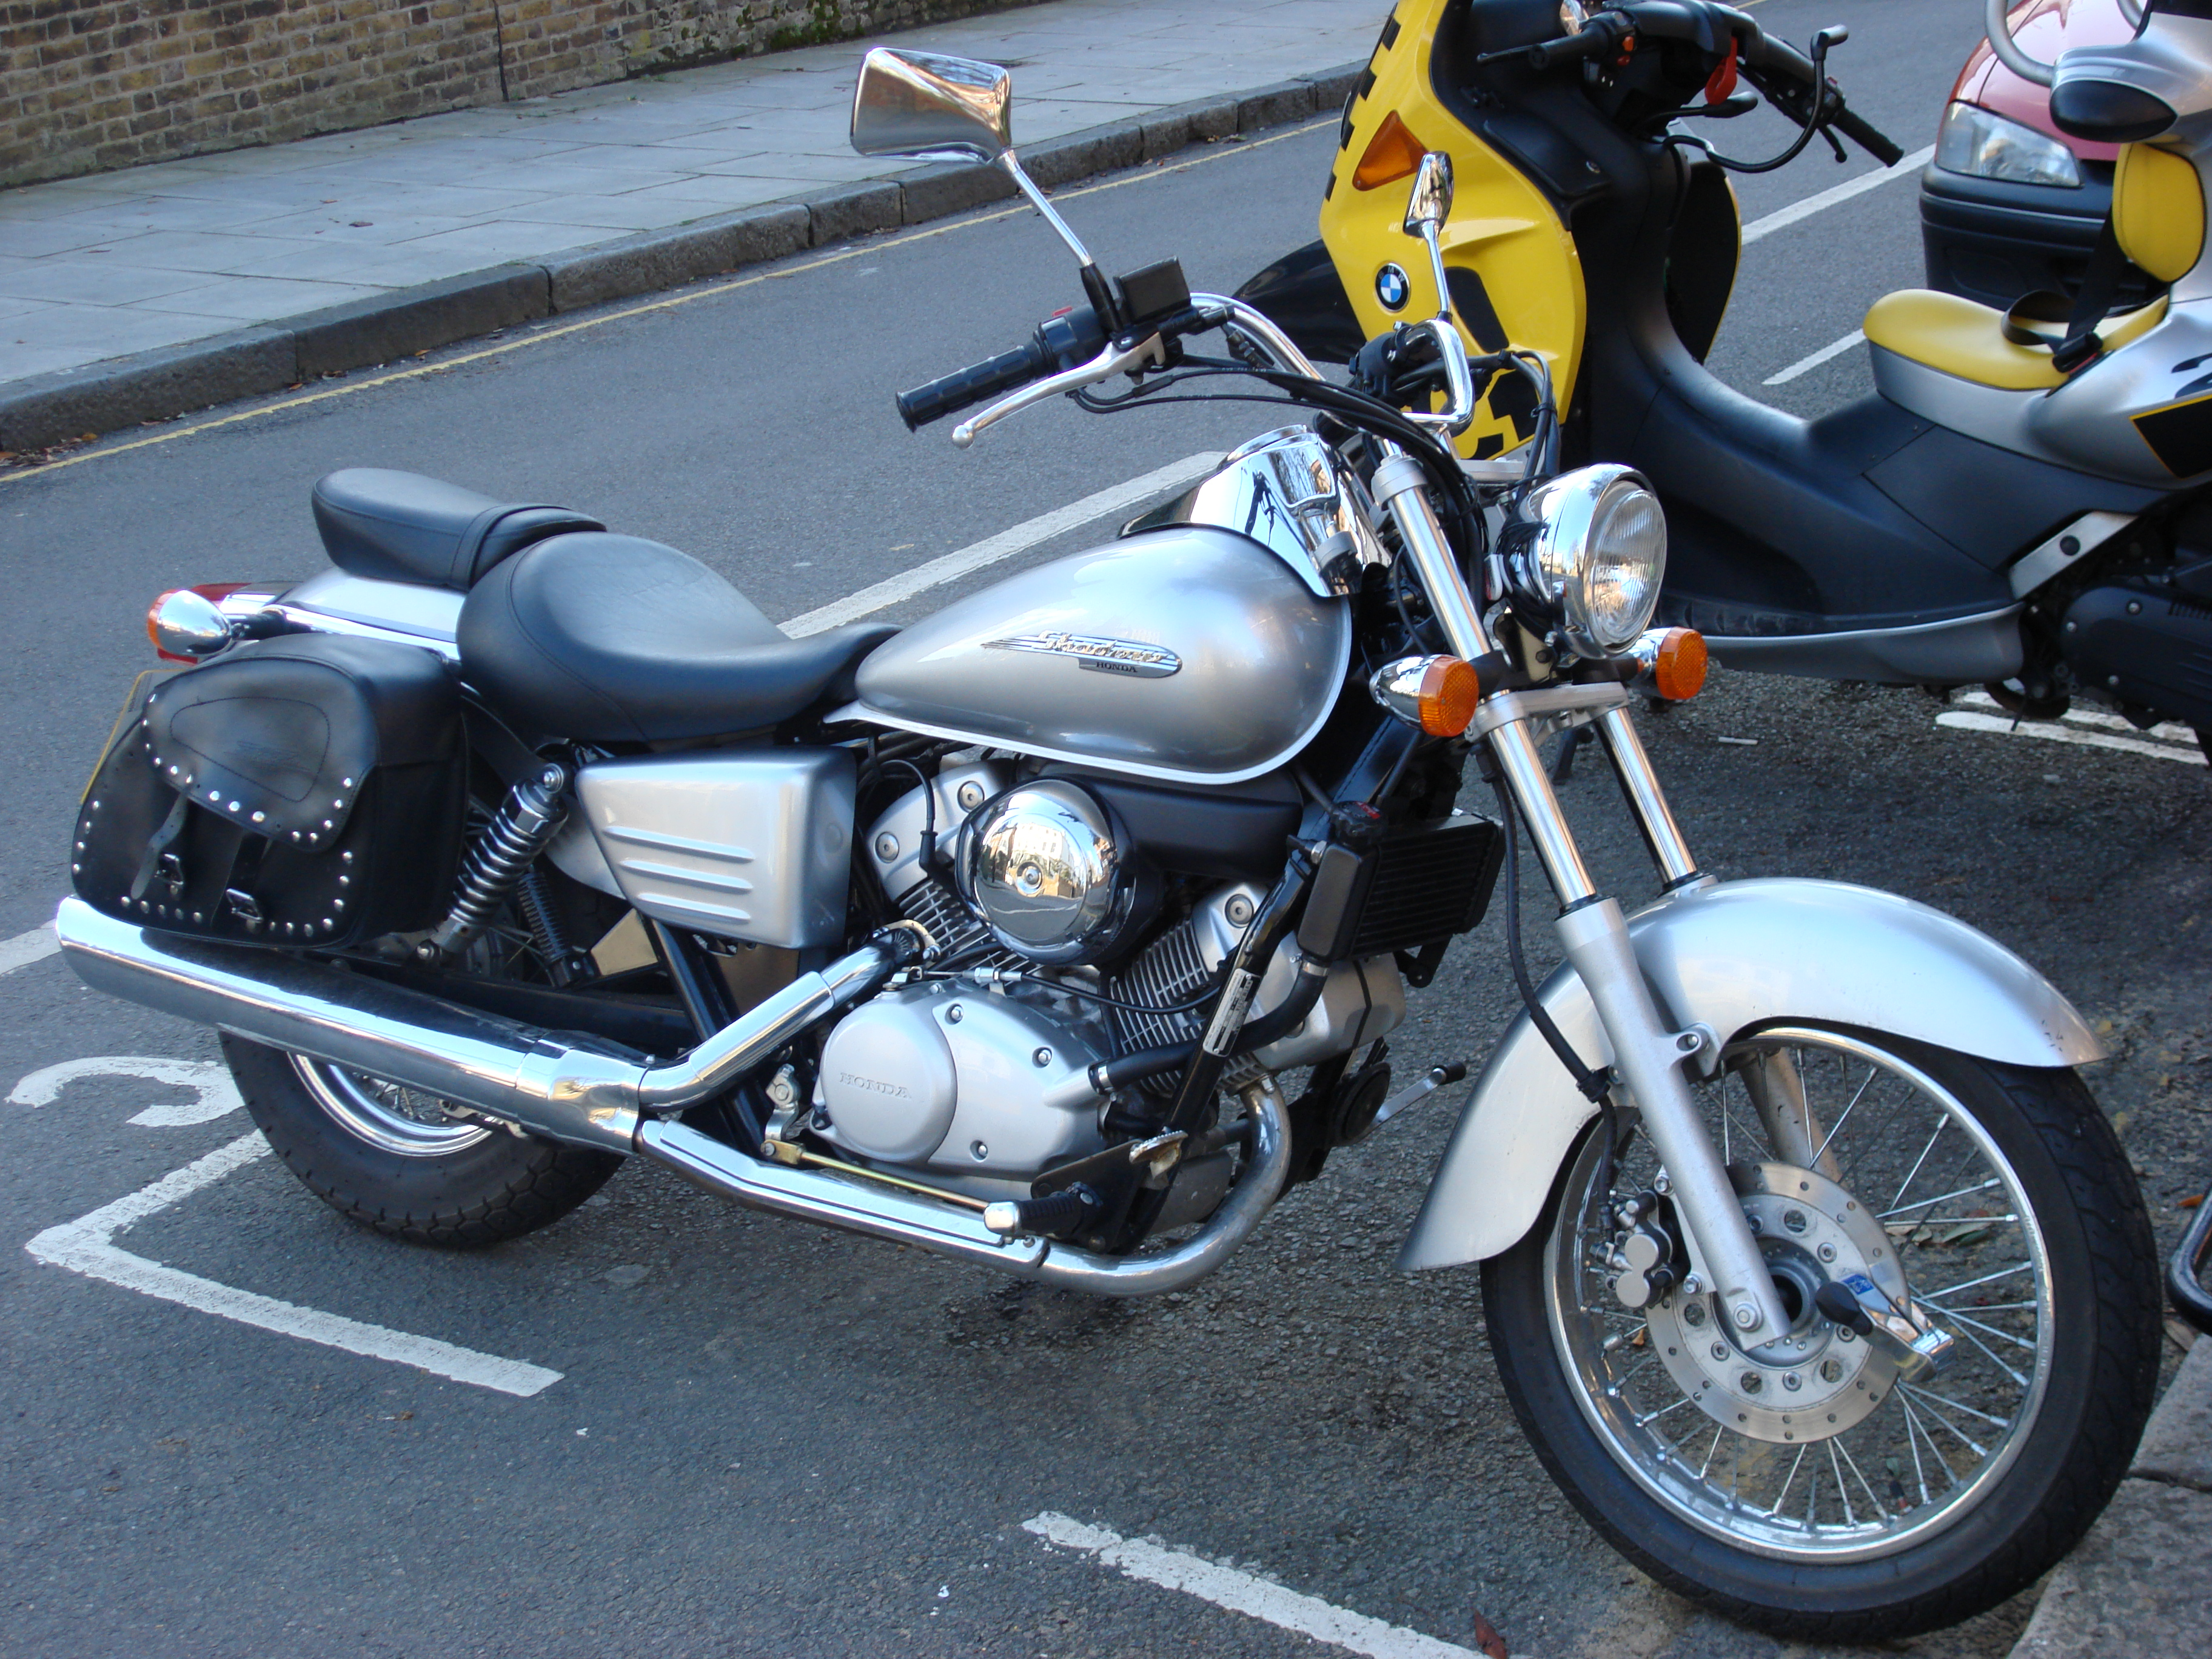 Honda VT750CD Shadow A.C.E. Deluxe 2002 #11